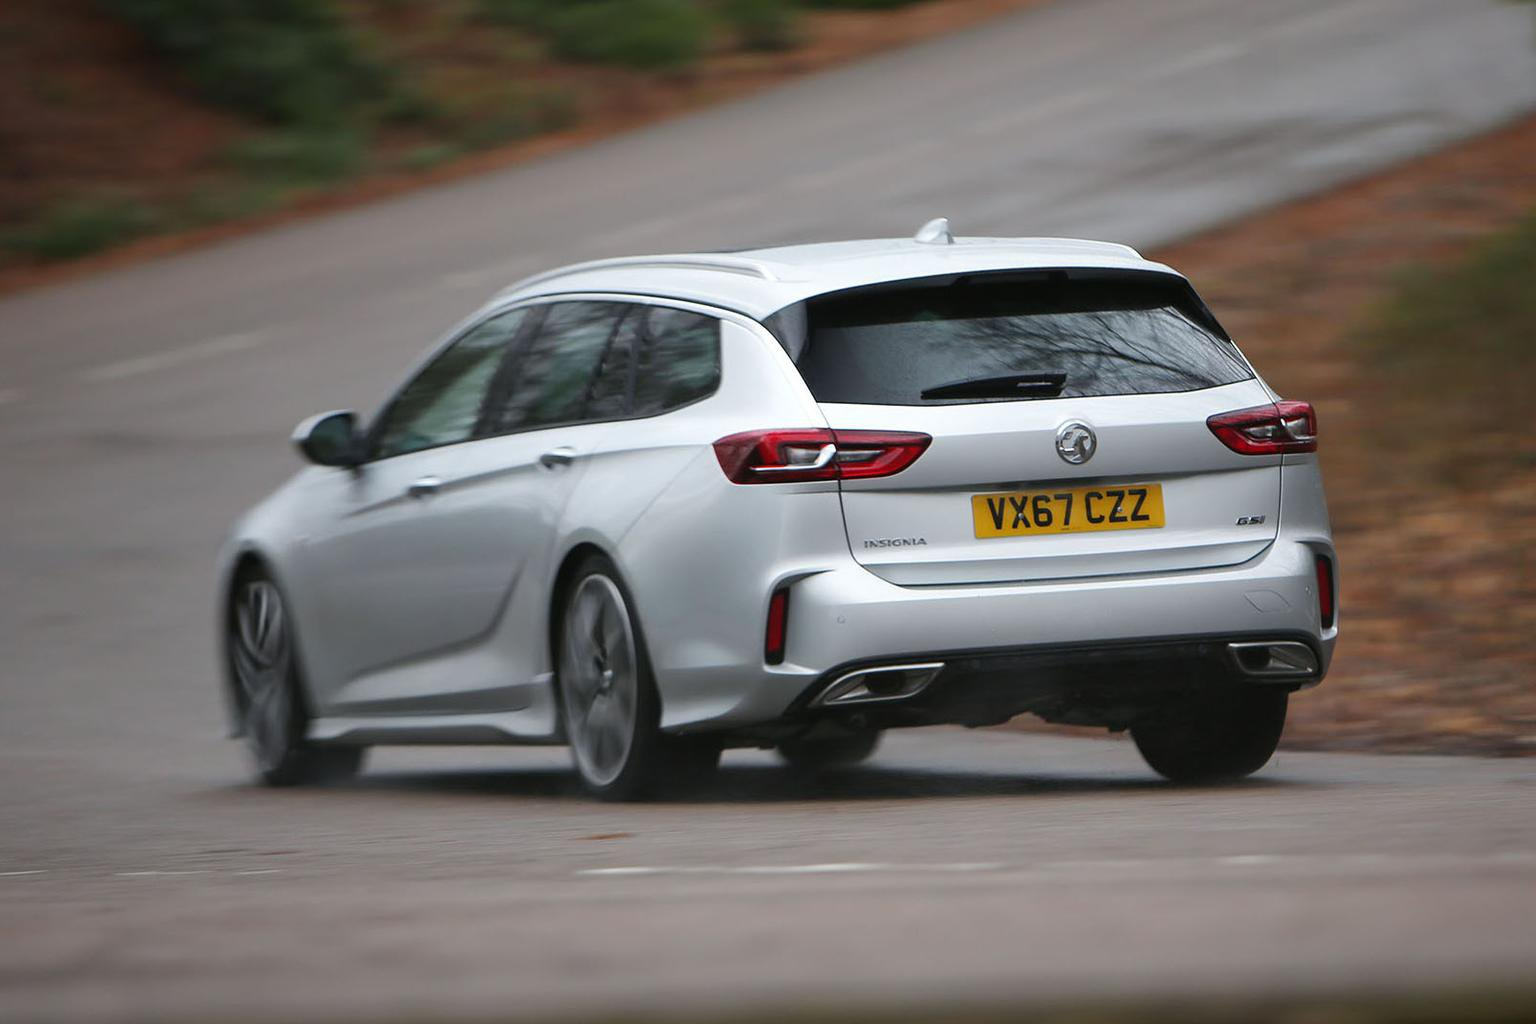 2018 Vauxhall Insignia Sports Tourer GSi review - price, specs and release date